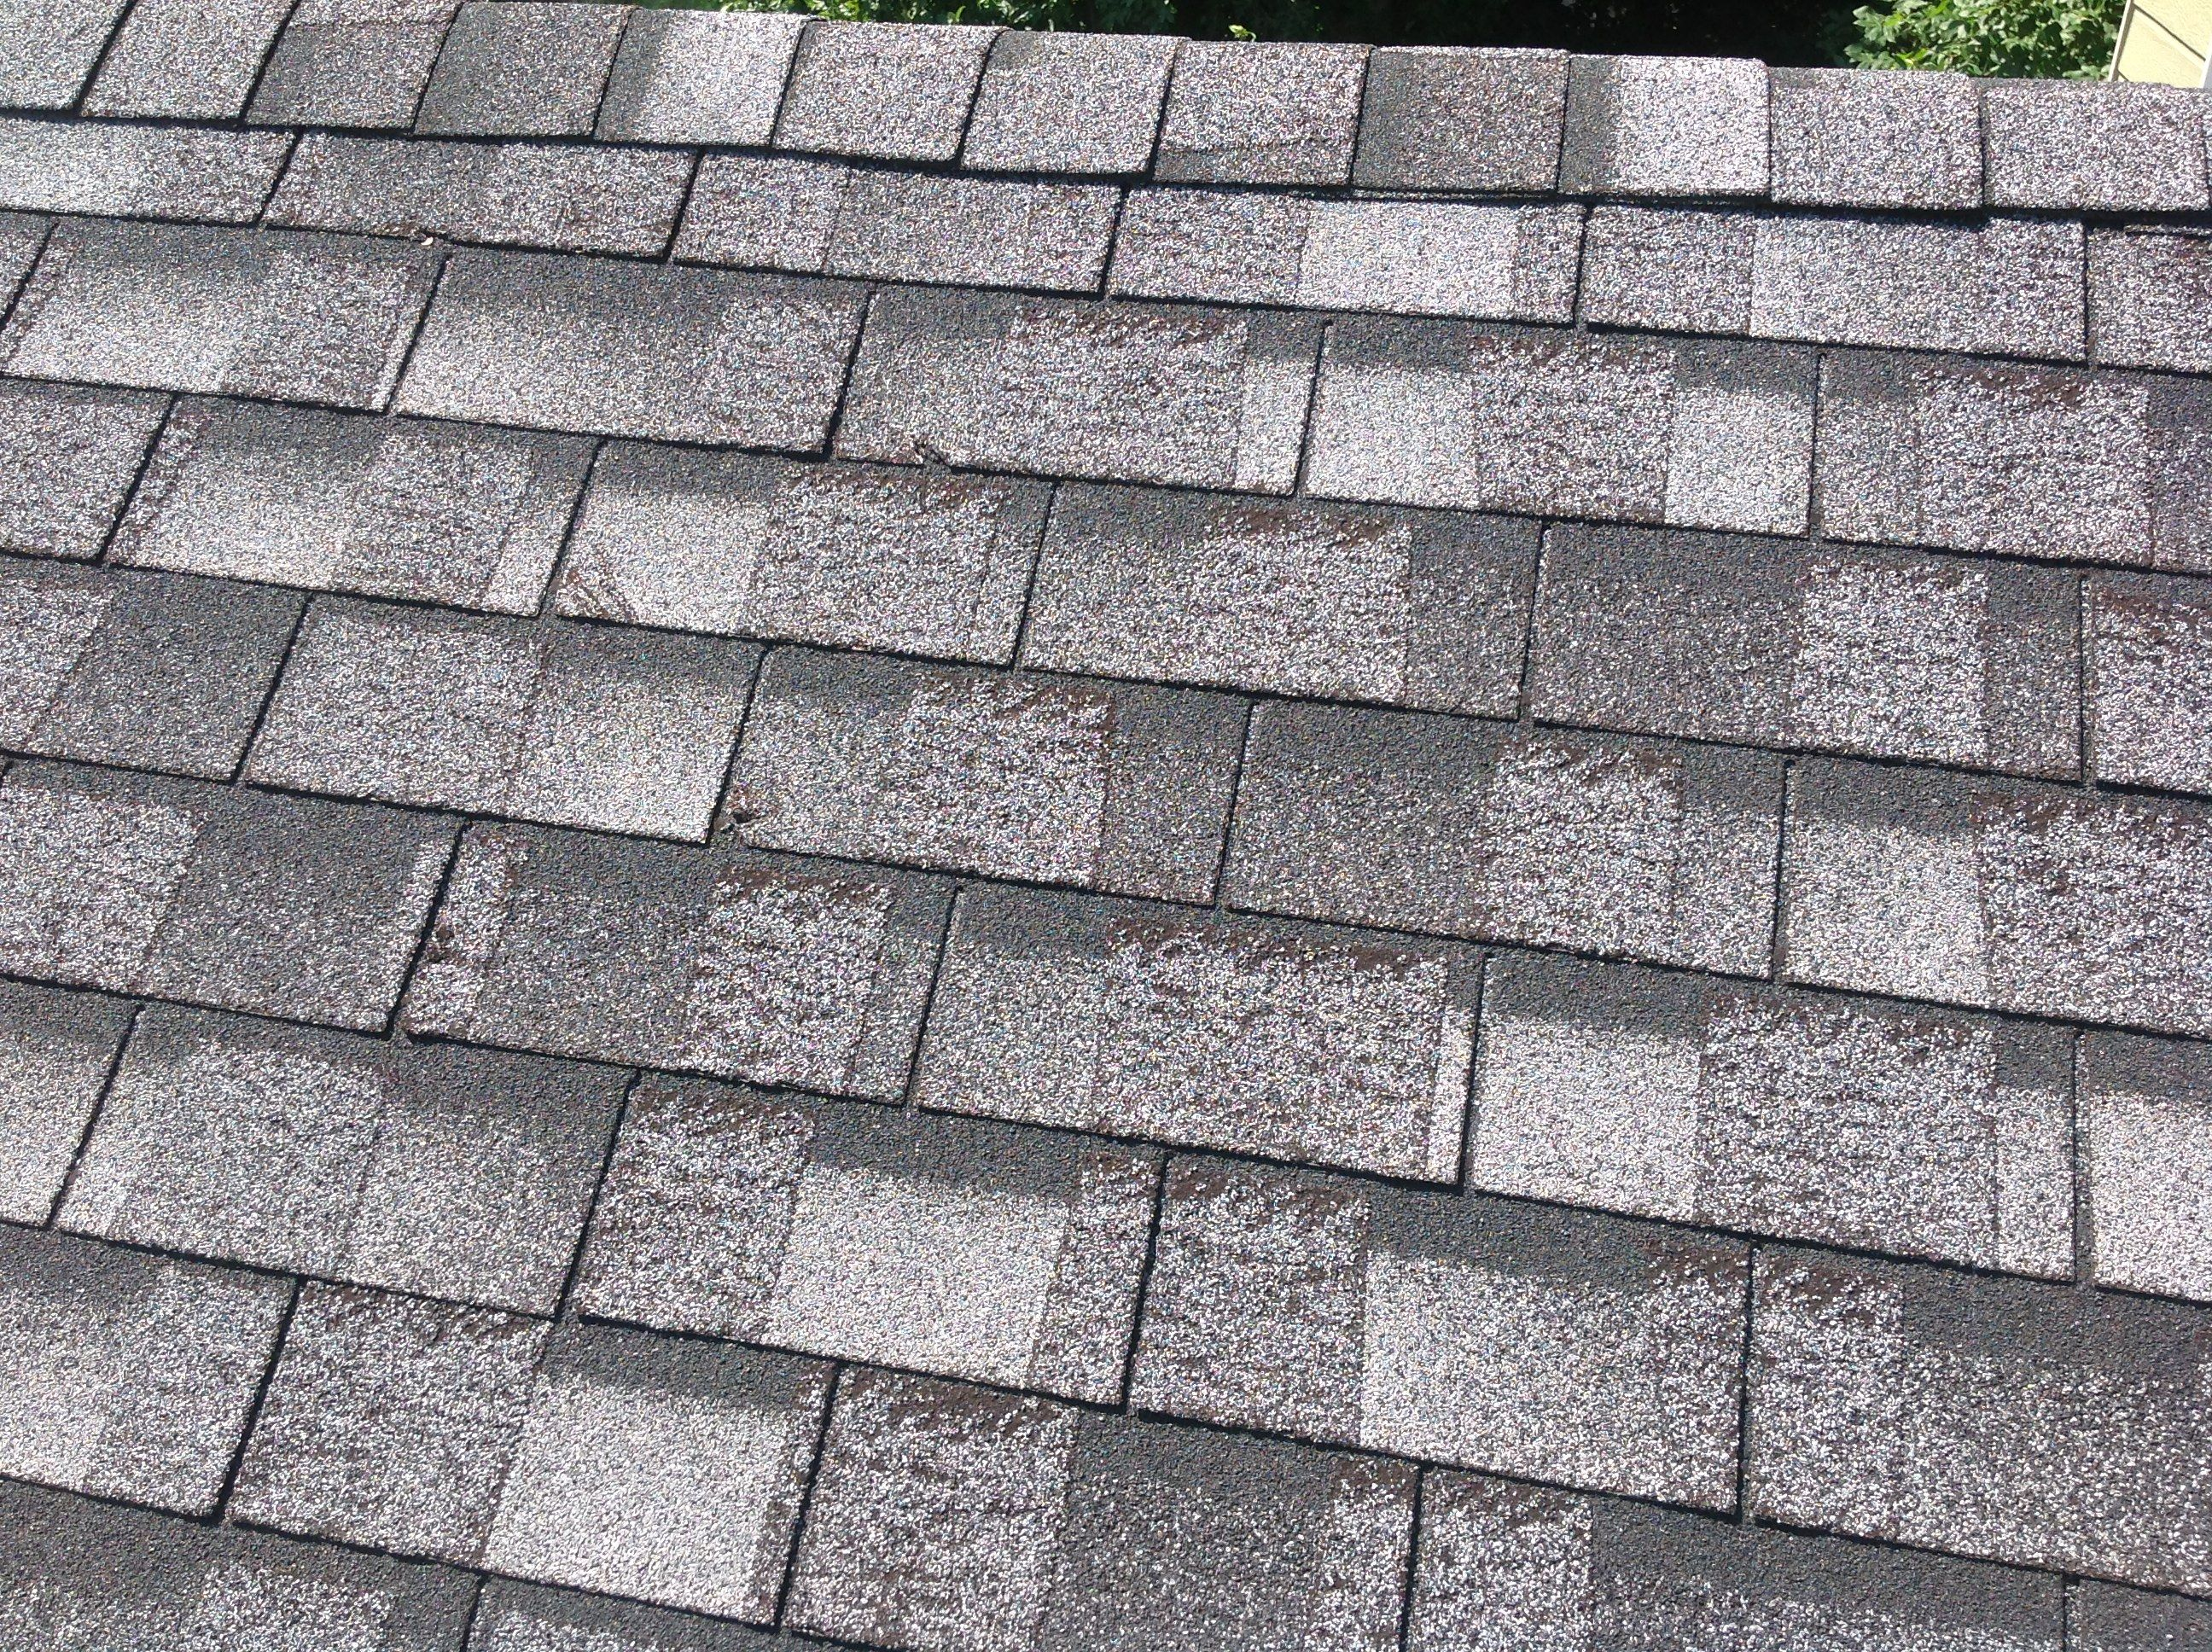 Blistered Chalet Shingles This Is A Discontinued Defective Shingle Made By Atlas The Blistering Effect Causes The Granules To Loose Roofing Shingling Repair